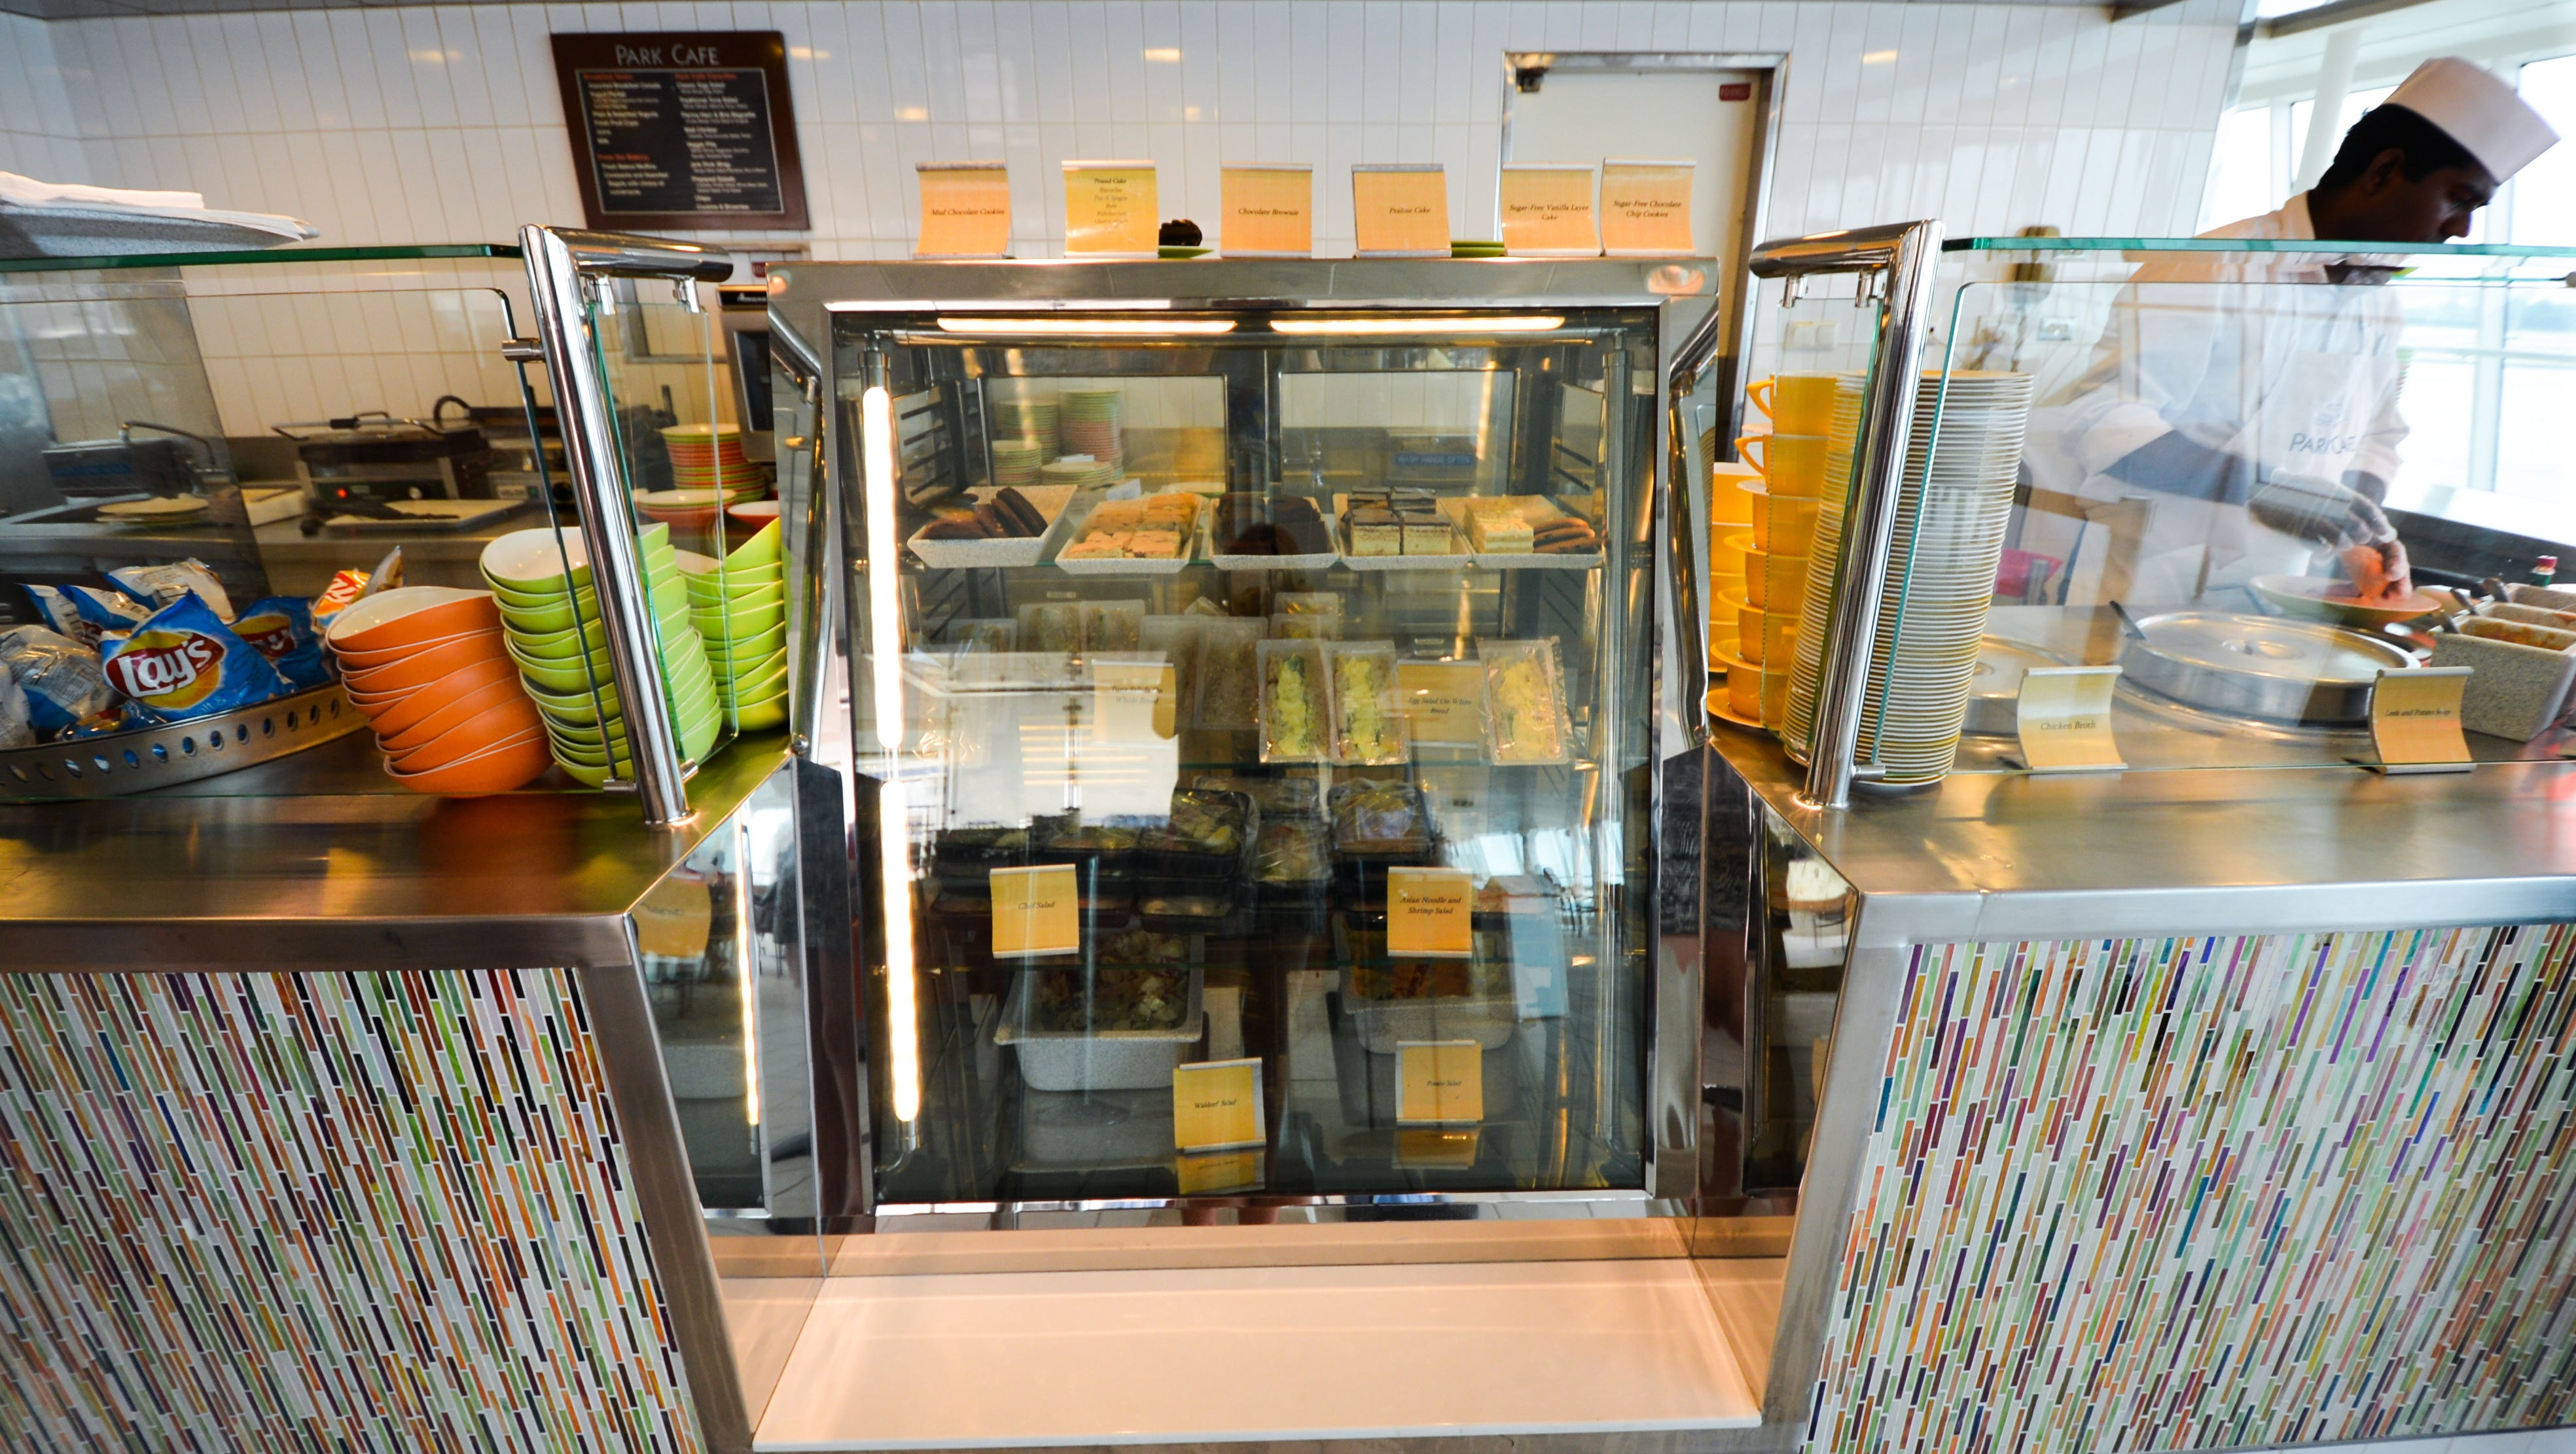 The Solarium is home to the new Park Cafe, which serves soups and made-to-order sandwiches.